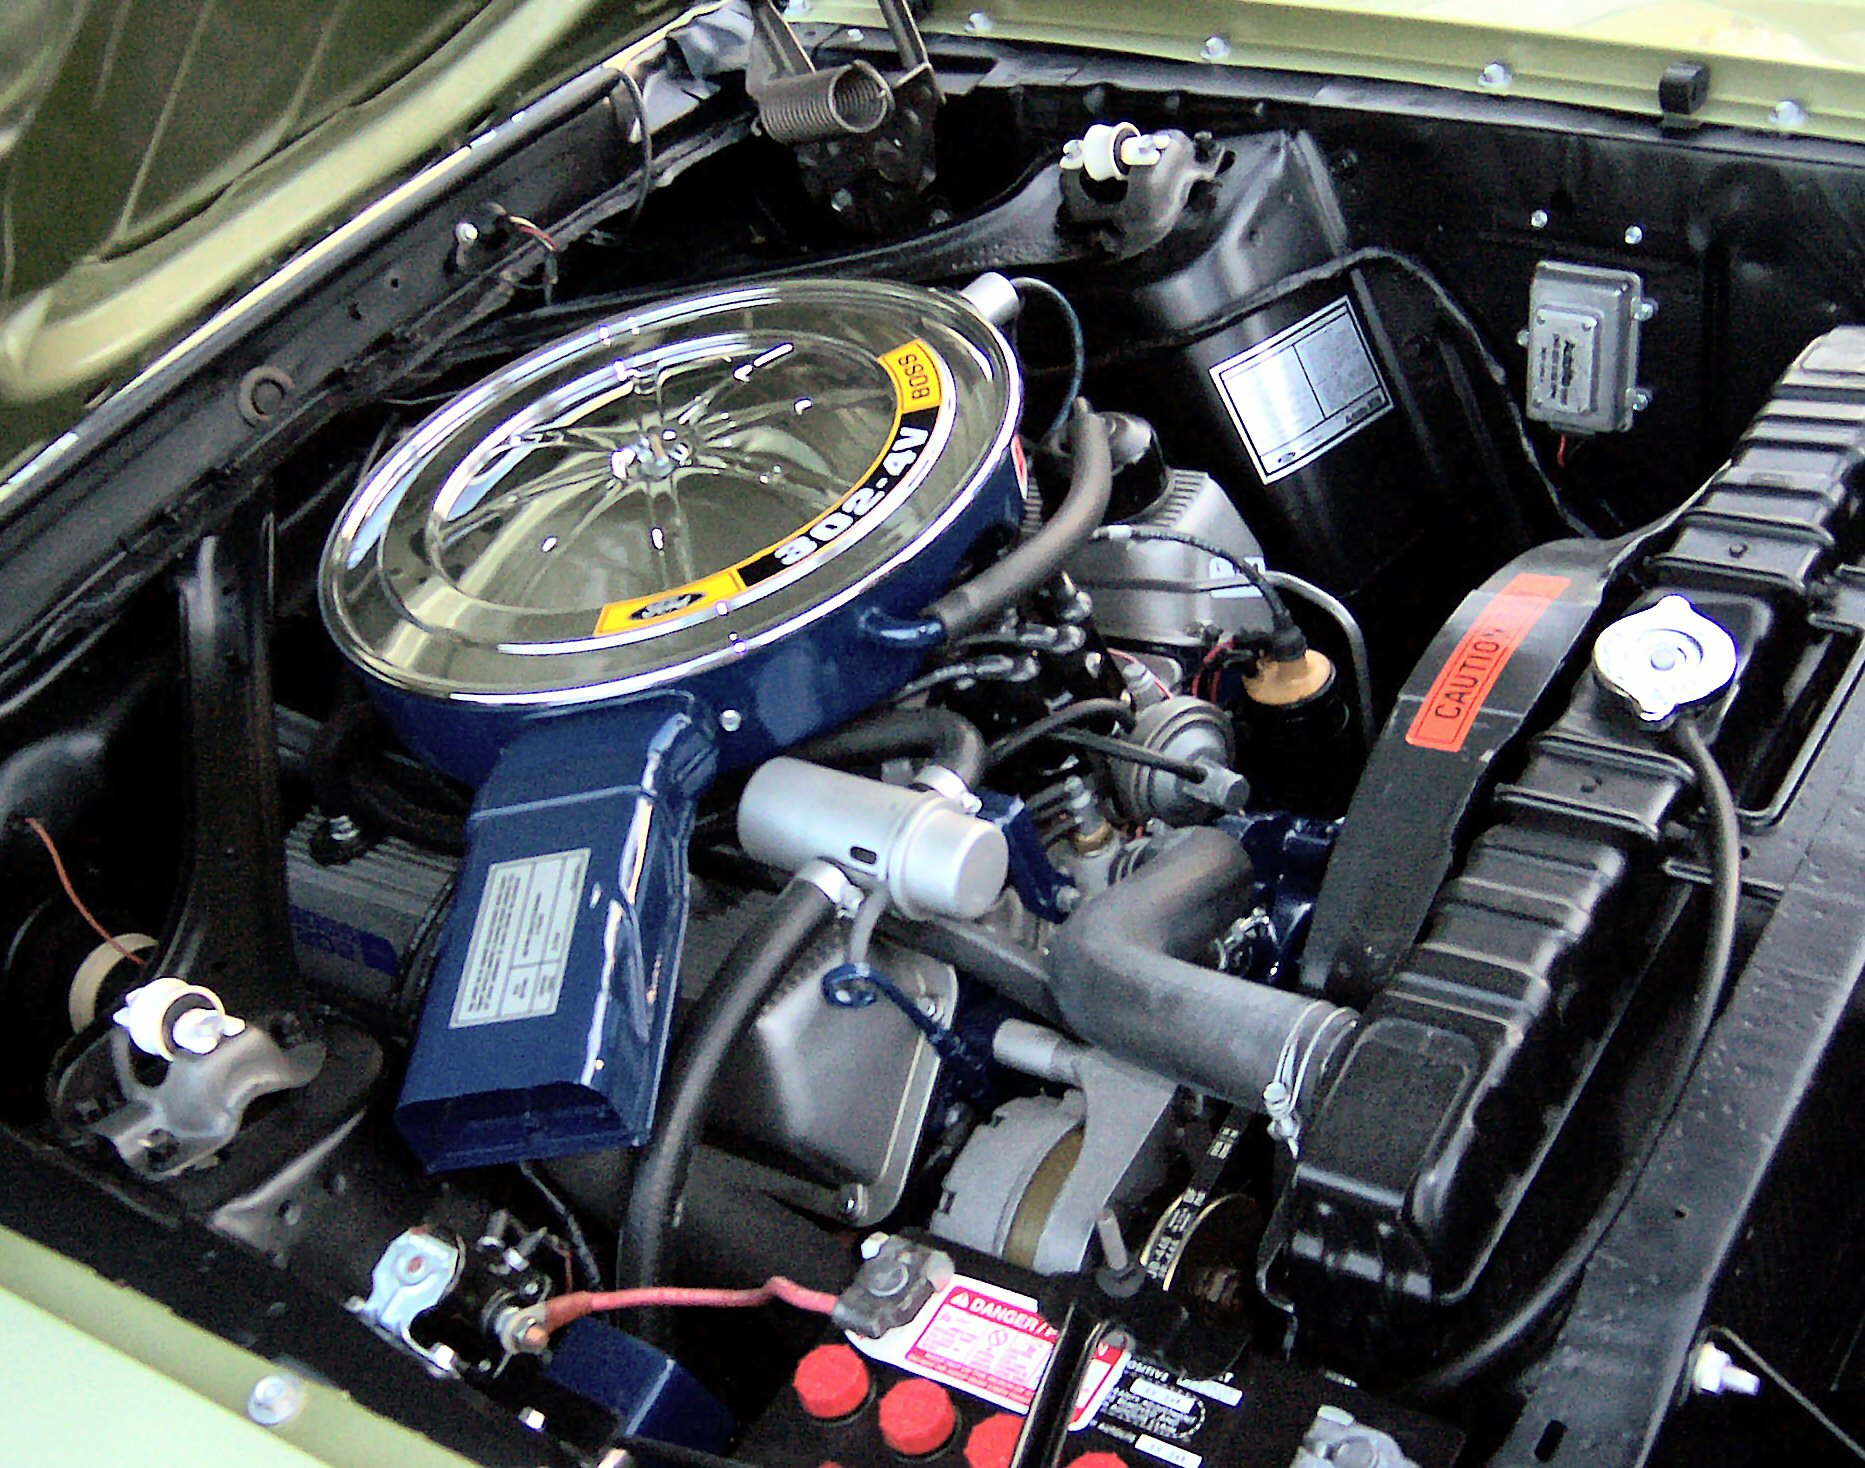 Ford Boss 302 engine on ford 500 transmission dipstick location